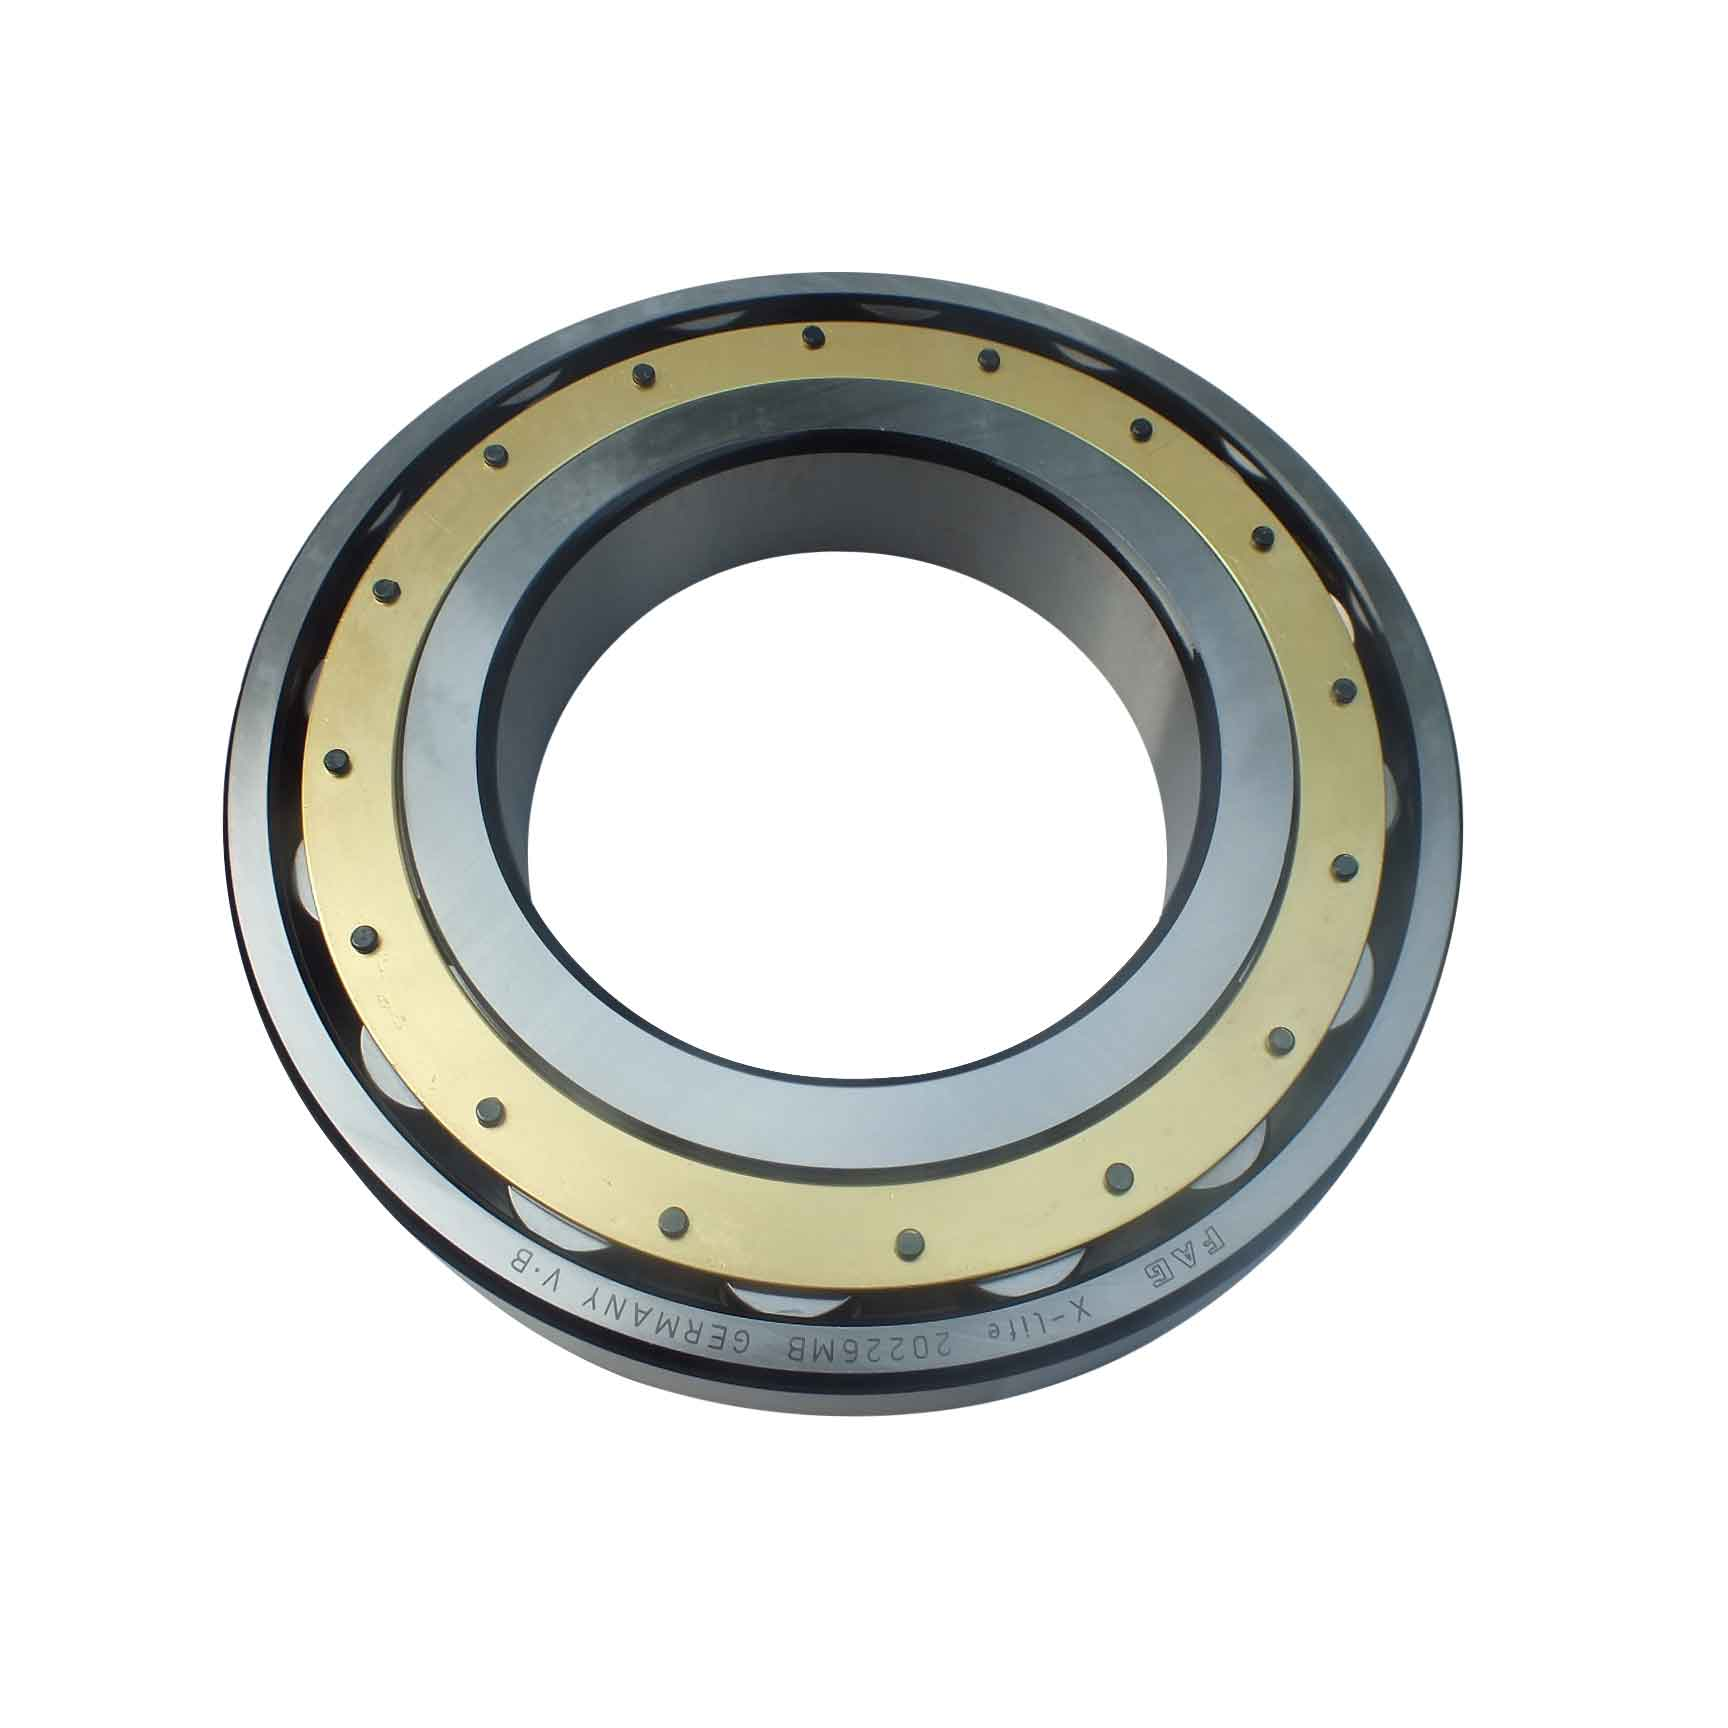 Spherical roller bearing 20226 for motorcycles